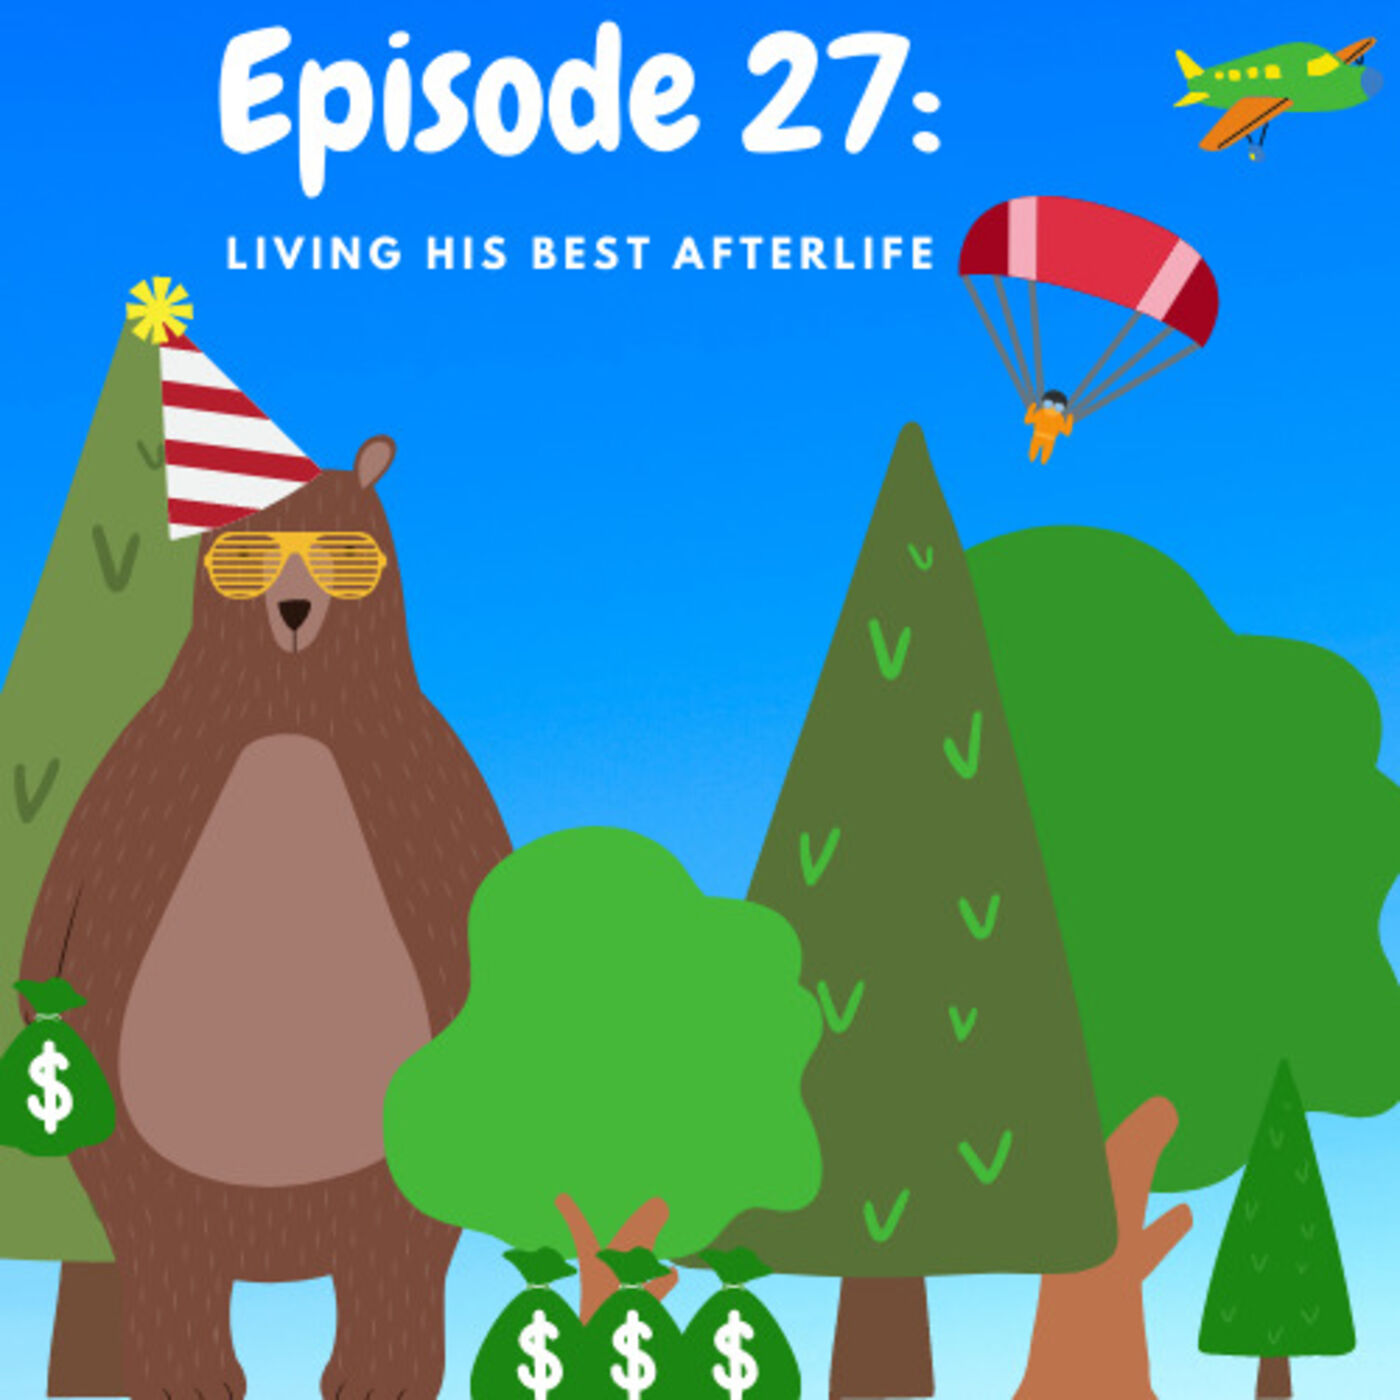 Ep 27: Living His Best Afterlife